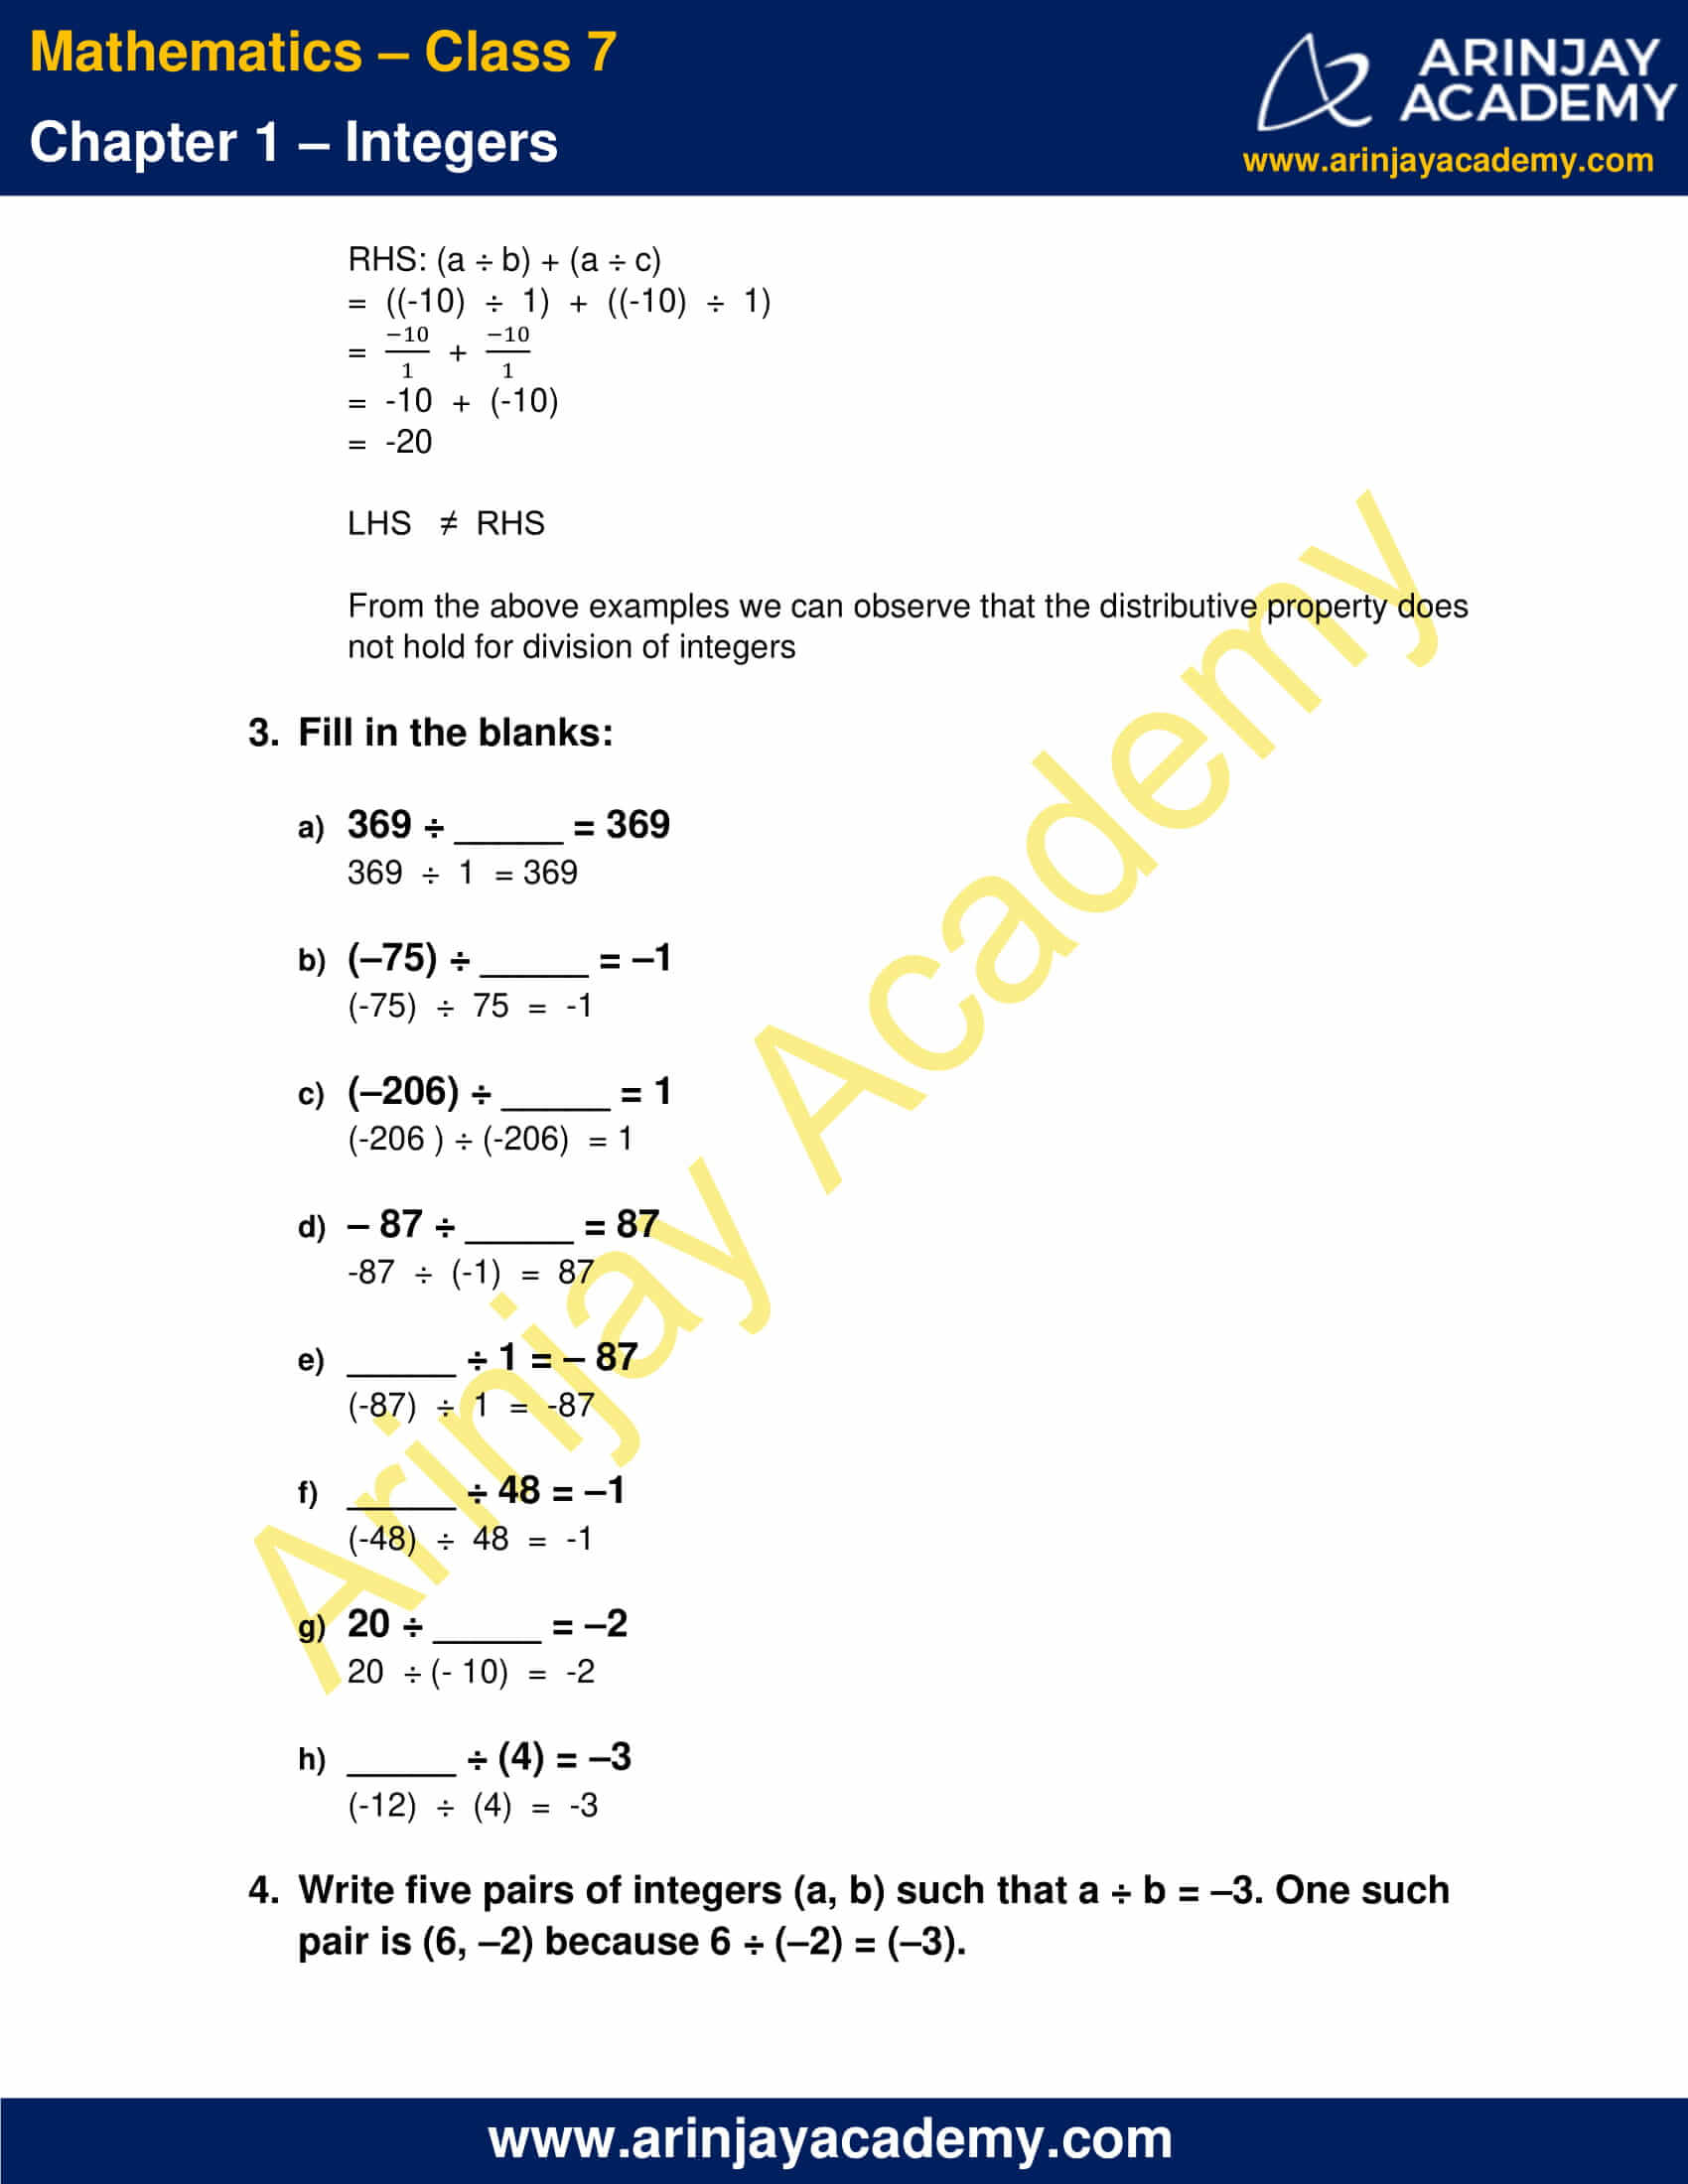 Class 7 Maths NCERT Solutions Chapter 1 Exercise 1.4 image 3